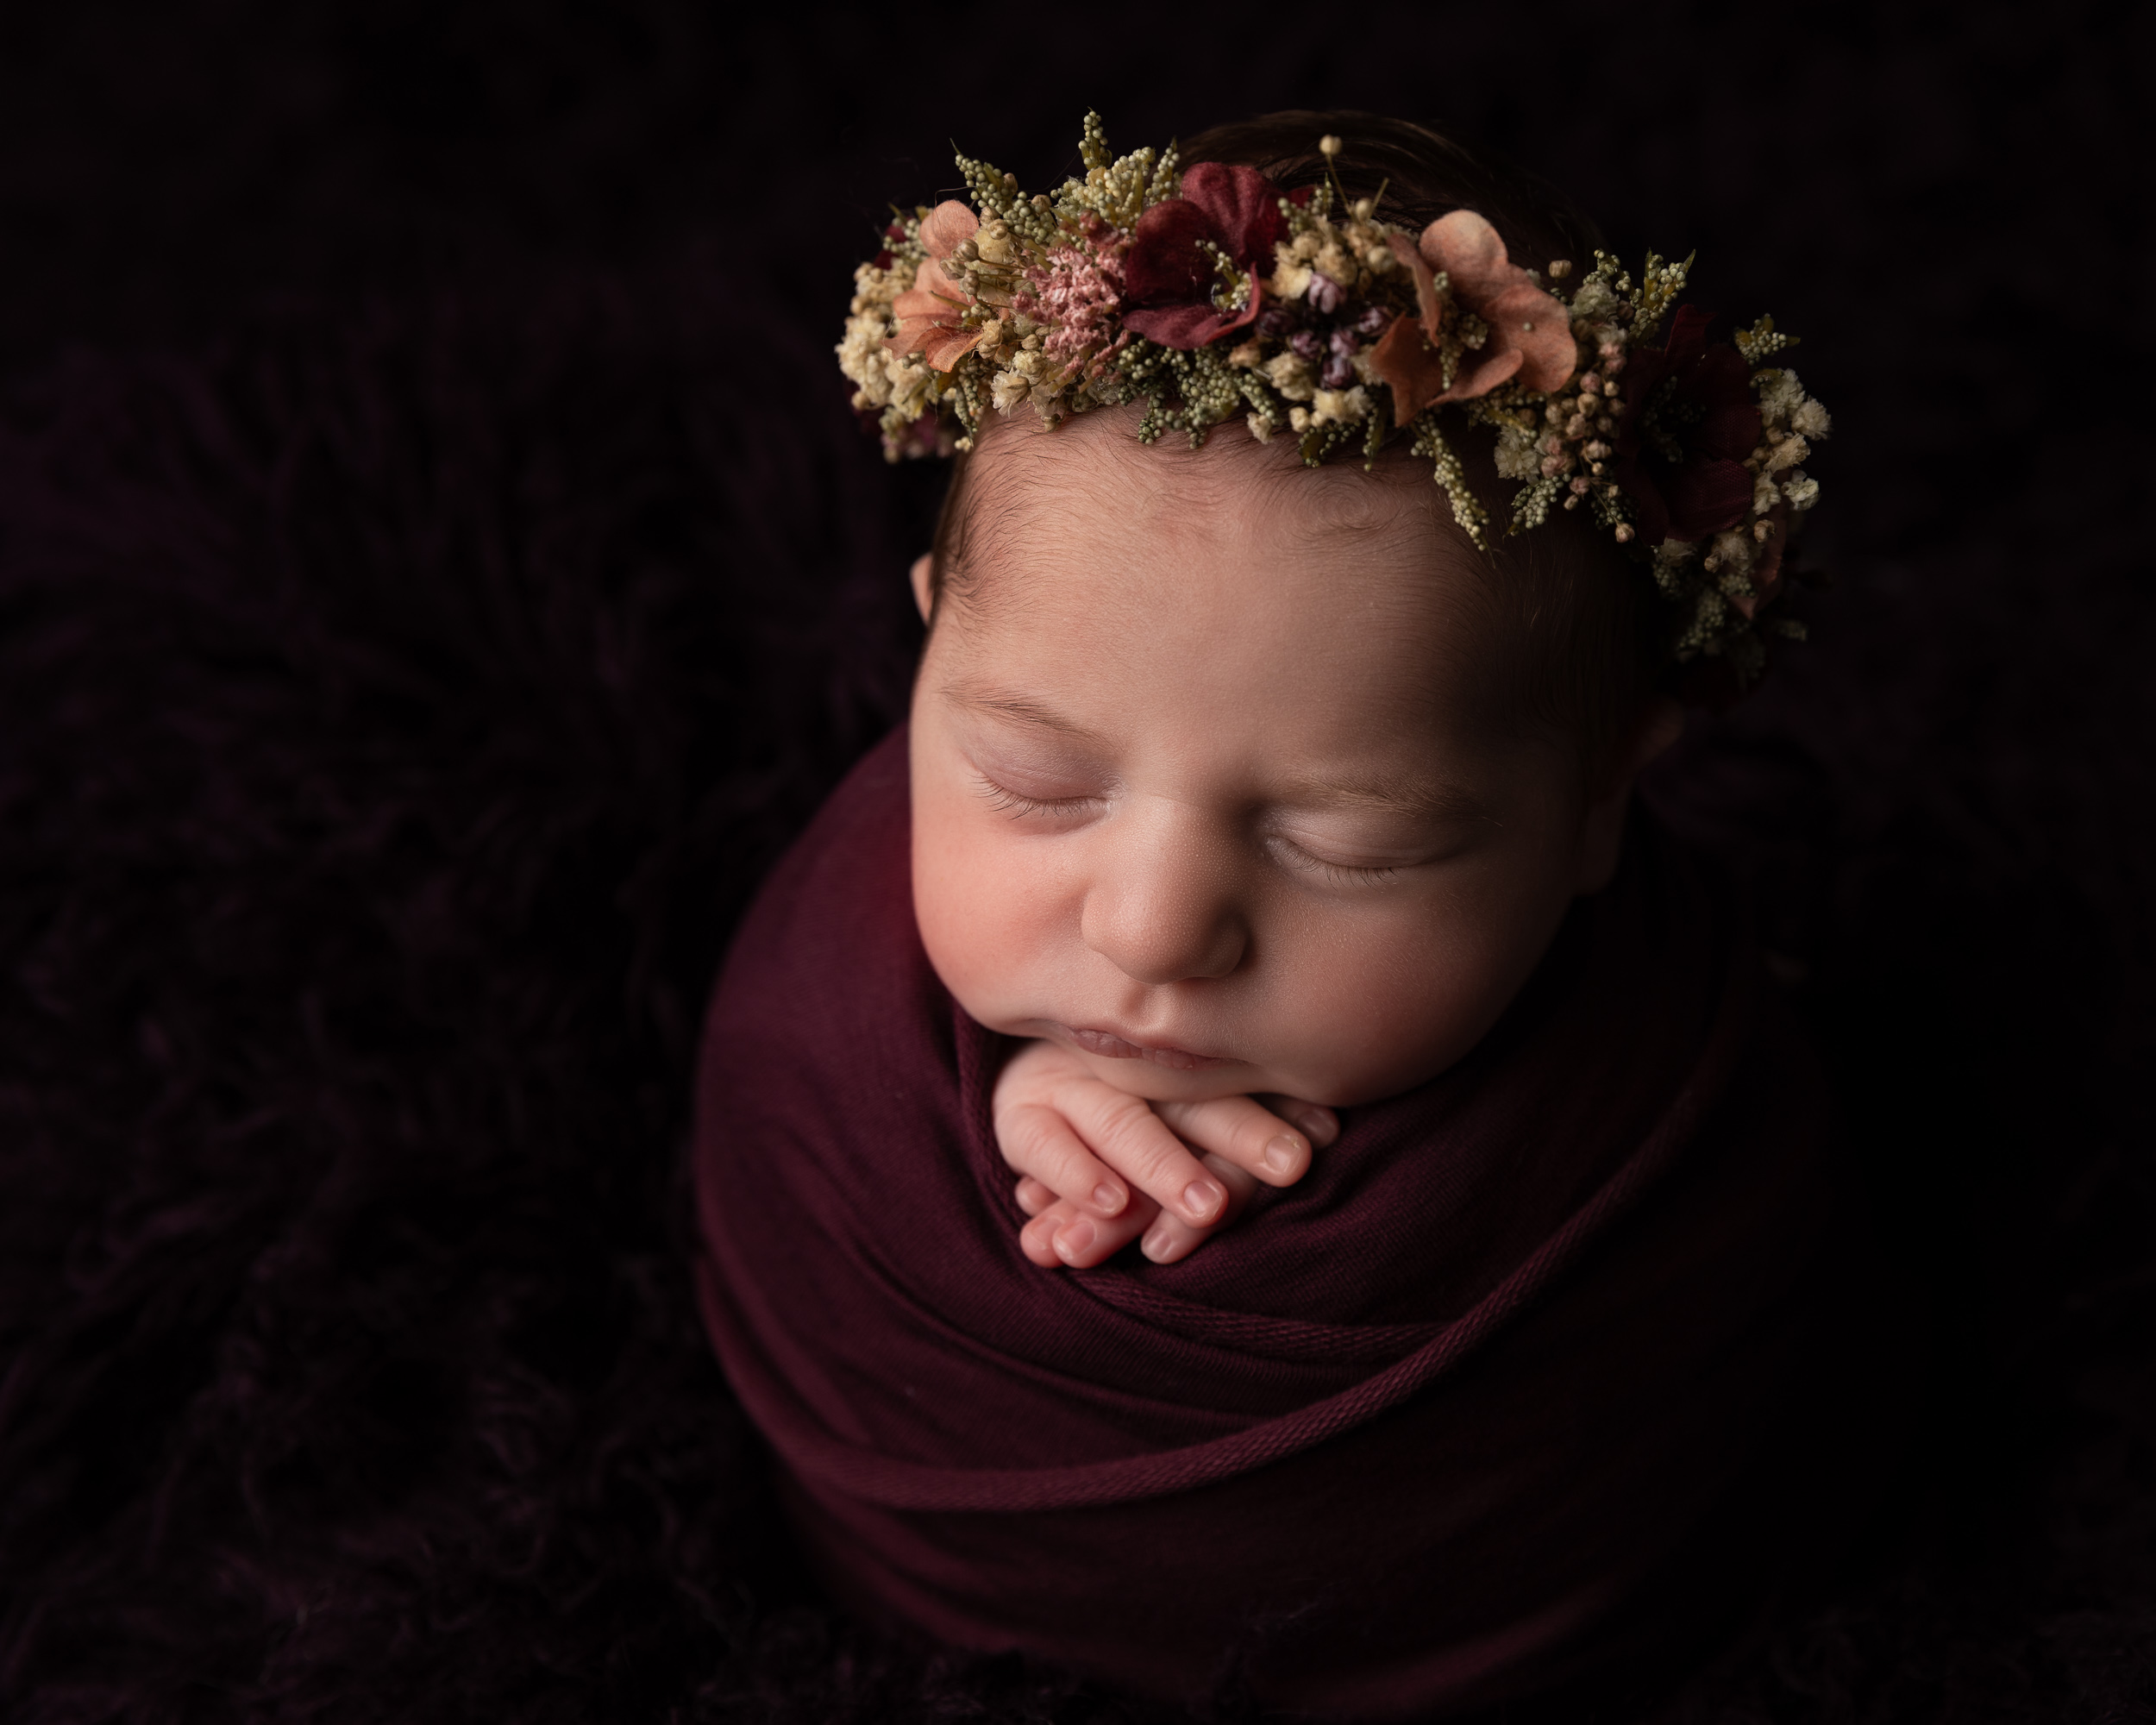 Dark toned newborn image with flower halo by Cheshire newborn photographer in Sandbach